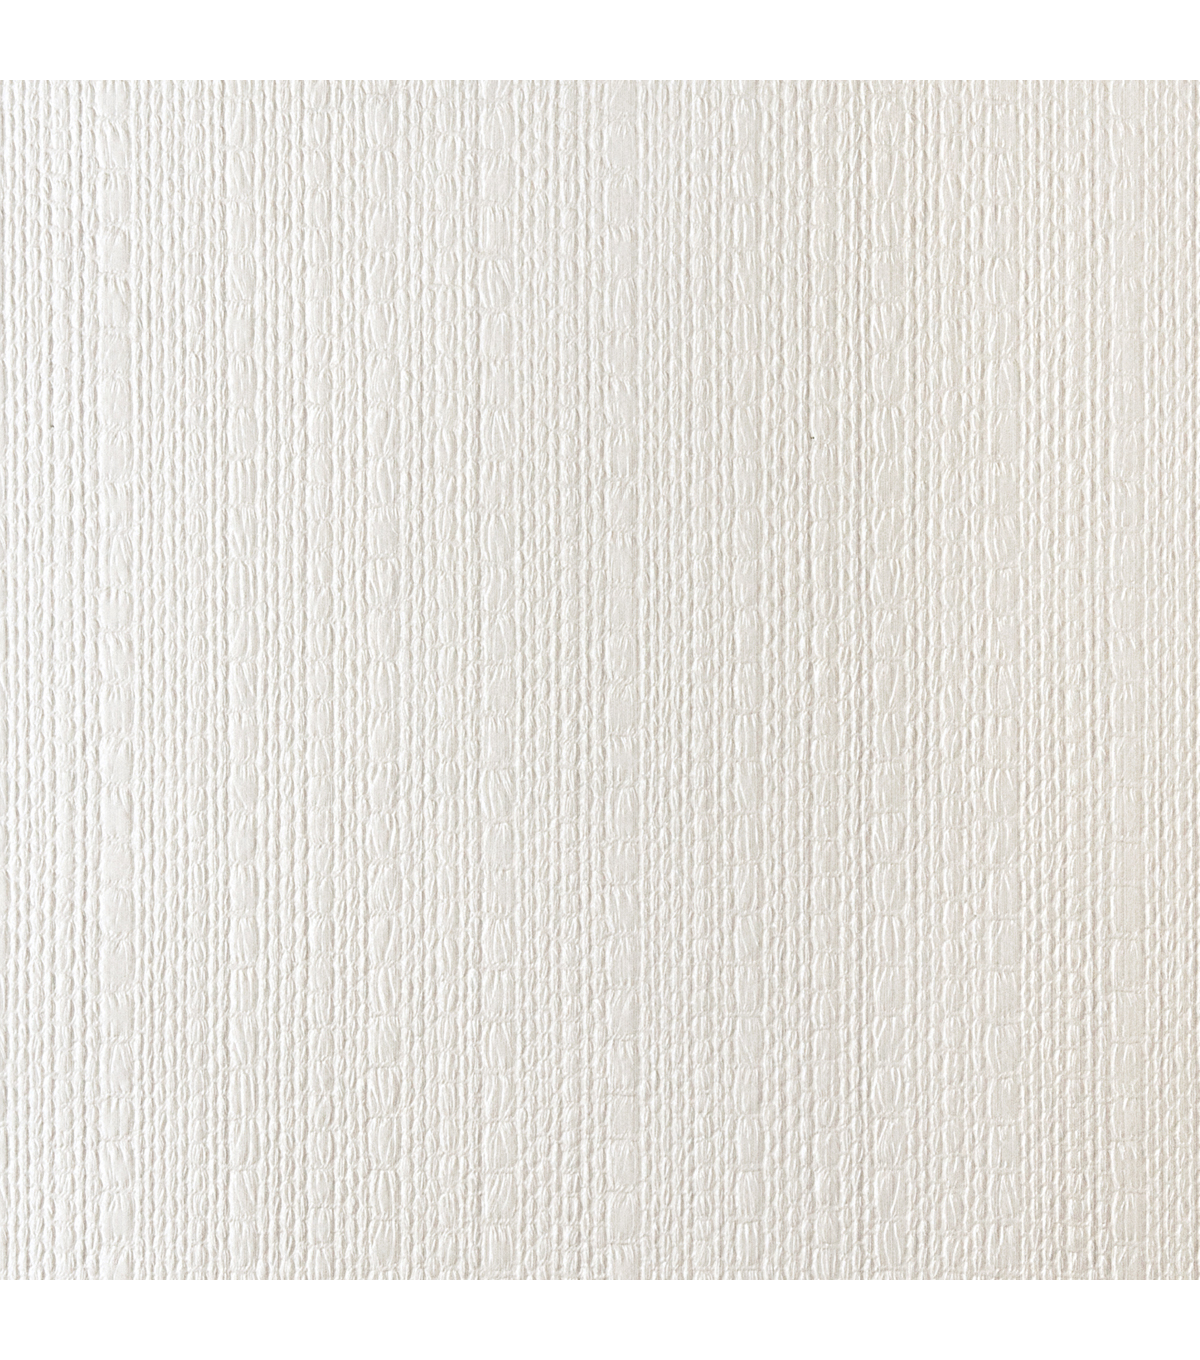 Almiro White Textured Weave Wallpaper Sample